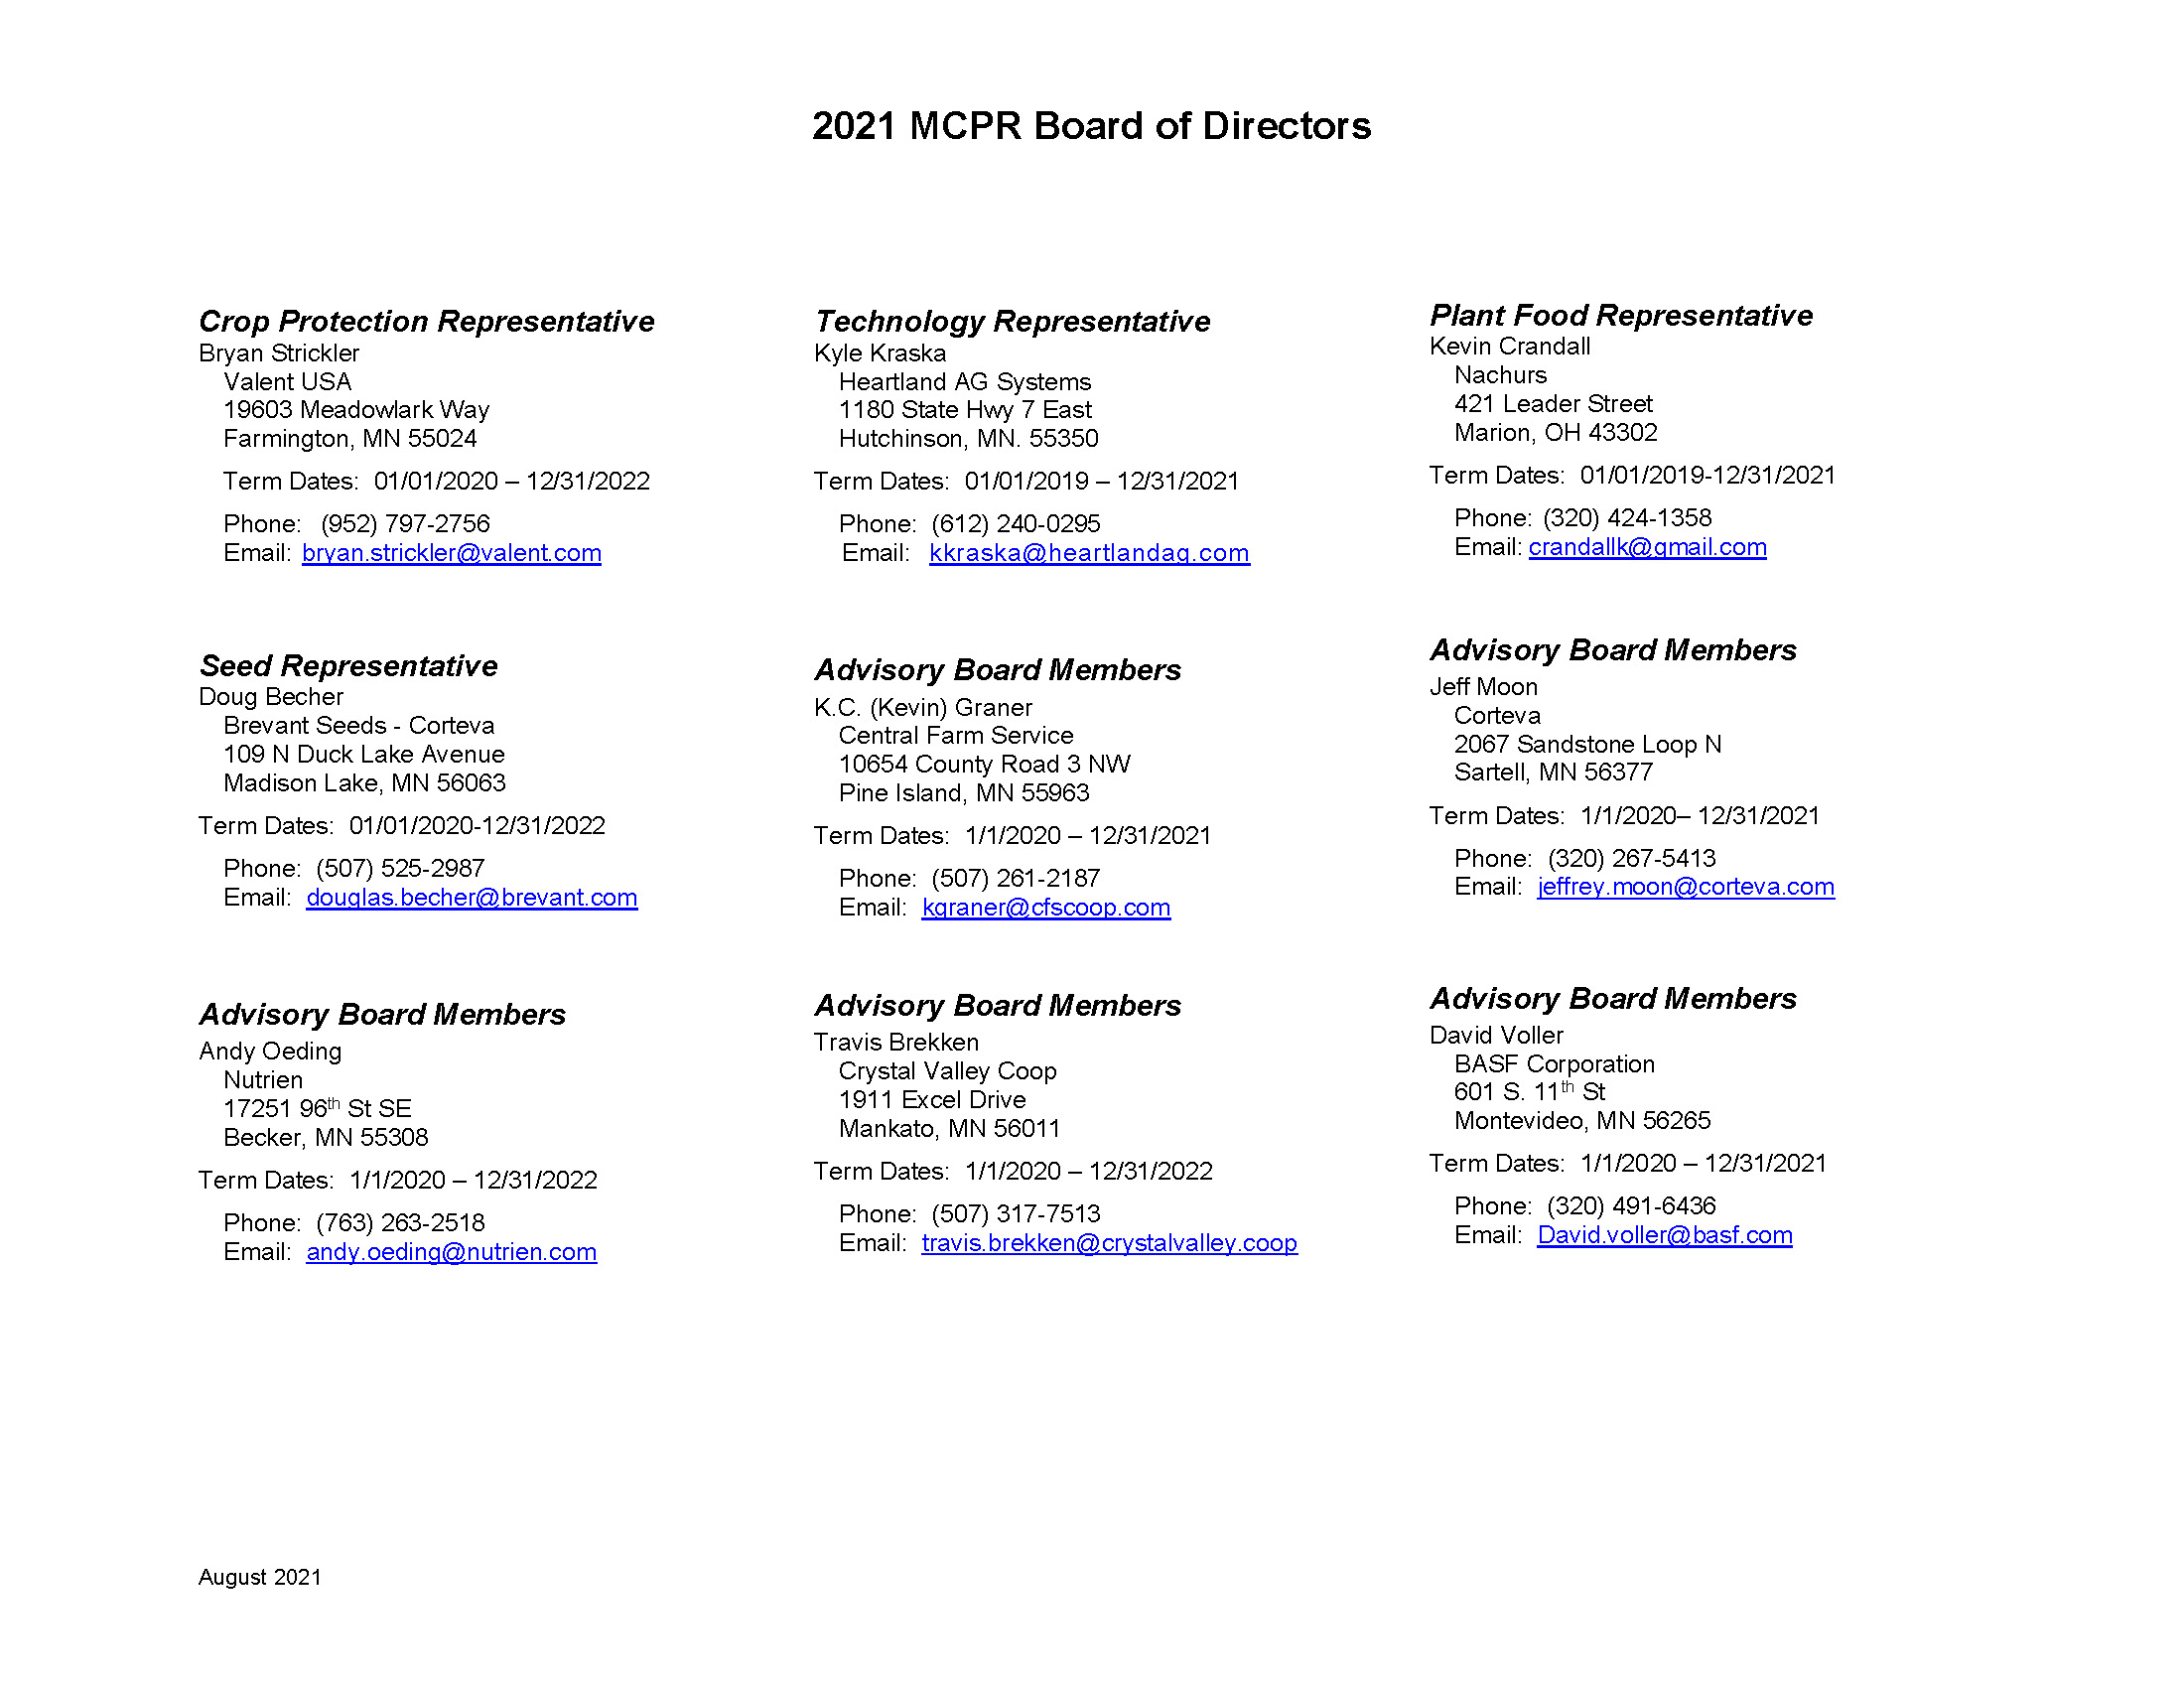 2021 MCPR Board of Directors_August_Page_2